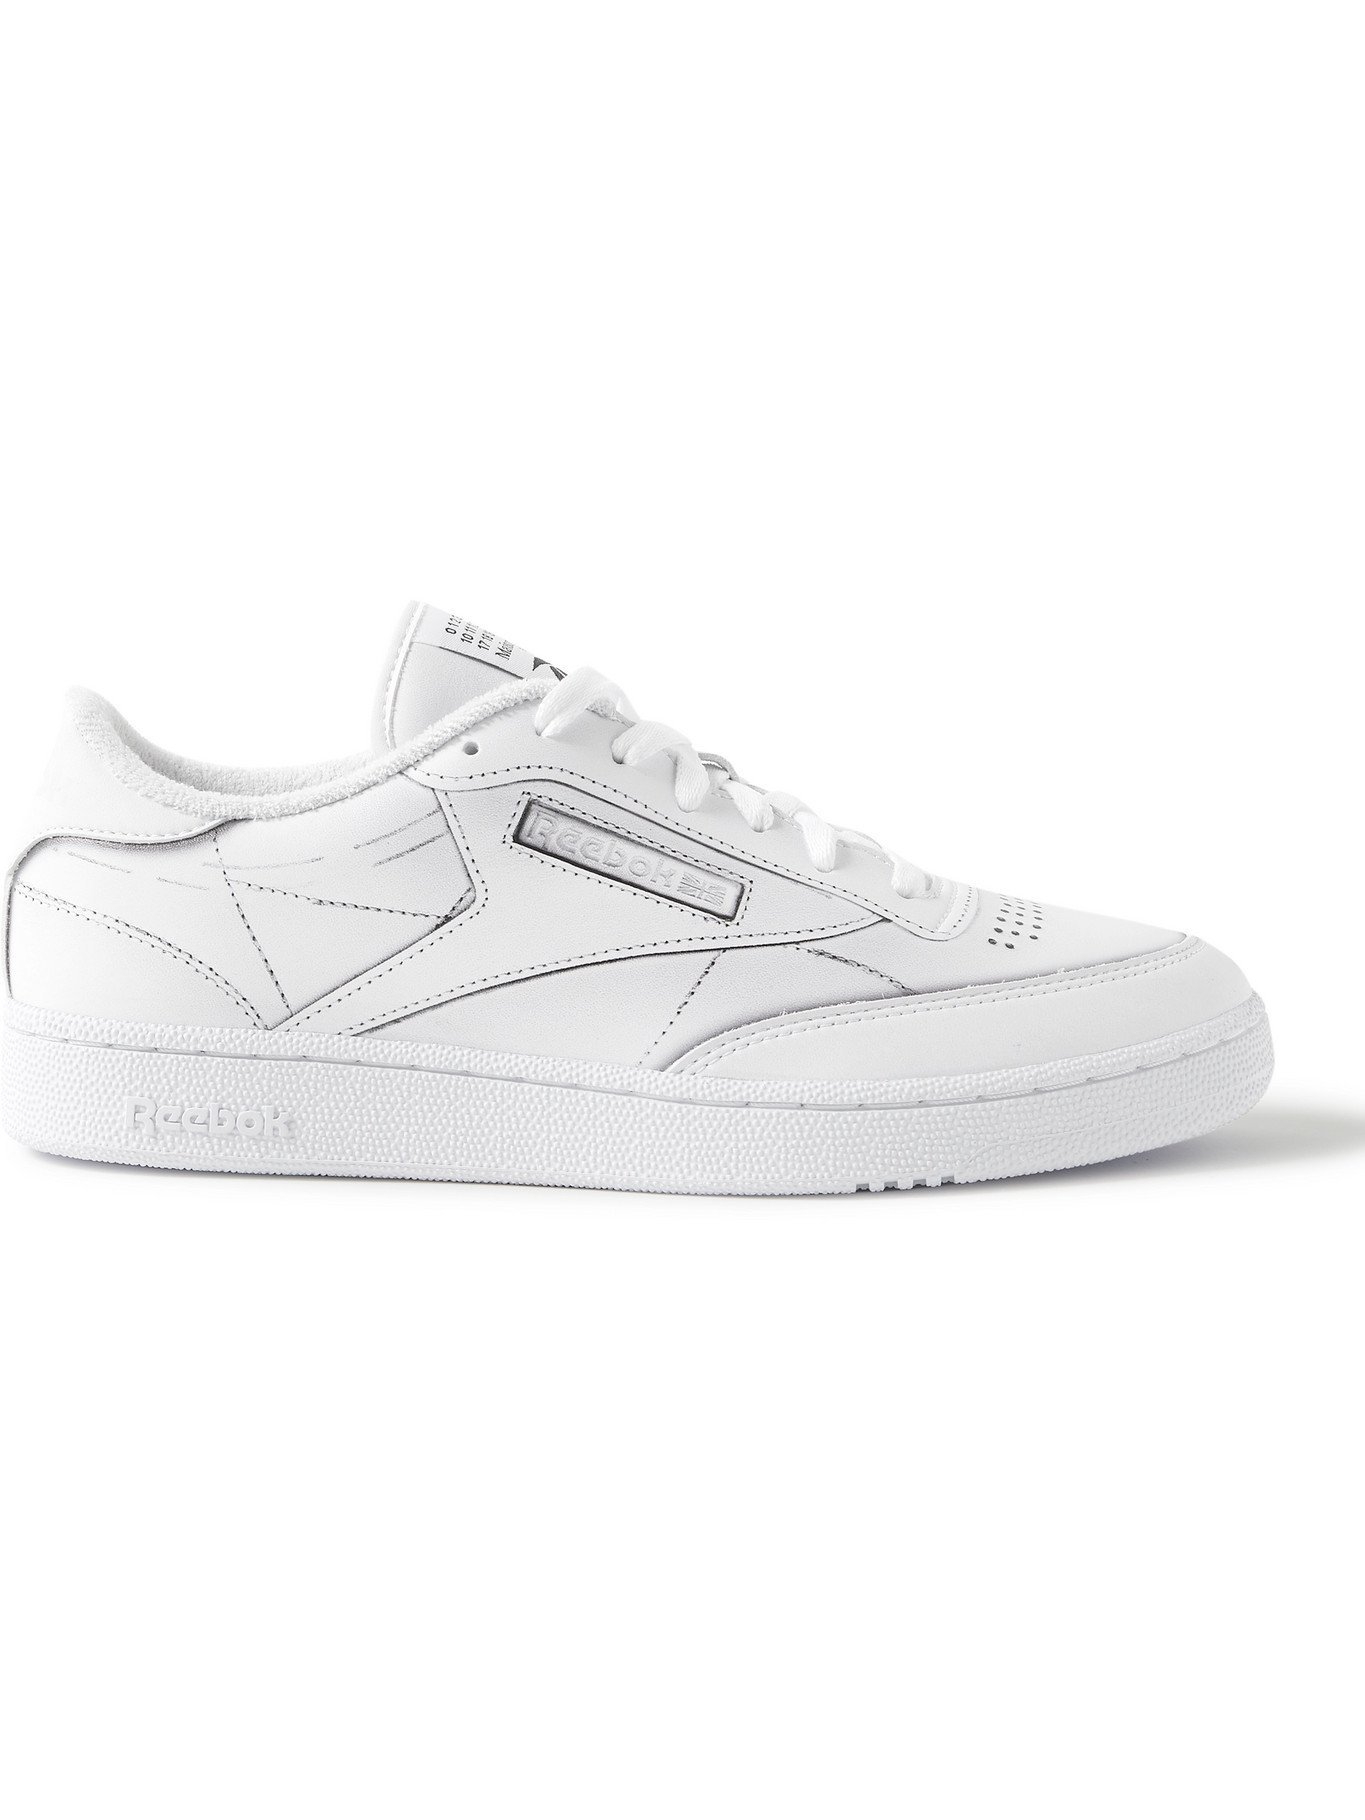 Photo: REEBOK - Maison Margiela Project 0 Club C Printed Leather Sneakers - White - 6